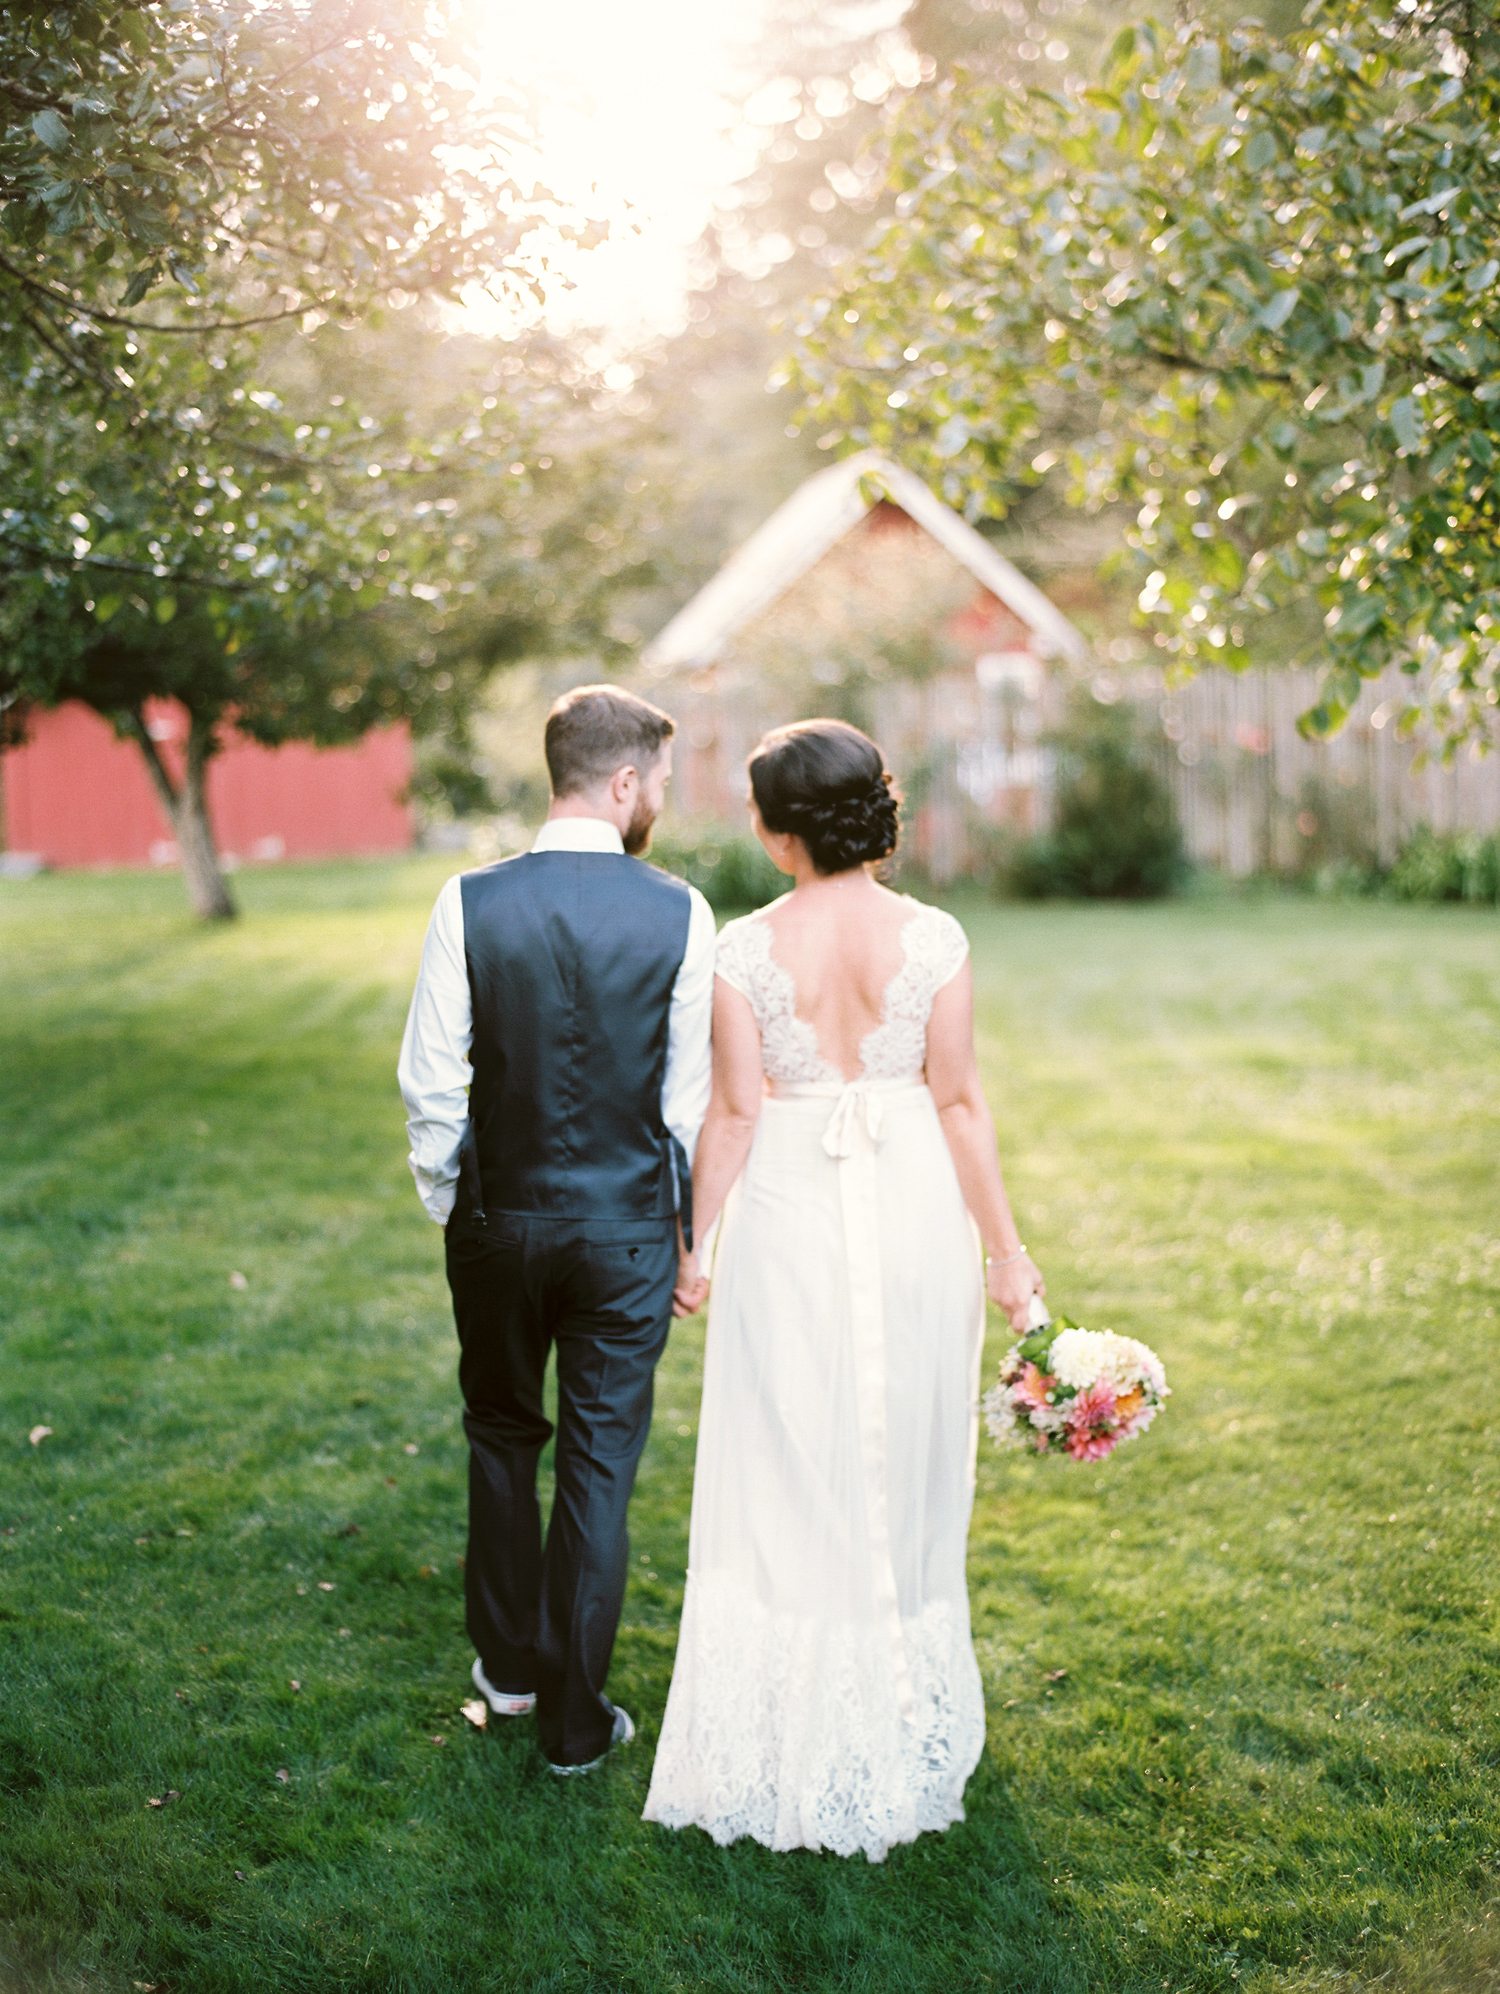 jmblog-farm-kitchen-wedding-seattle-film-ryan-flynn-0042.JPG